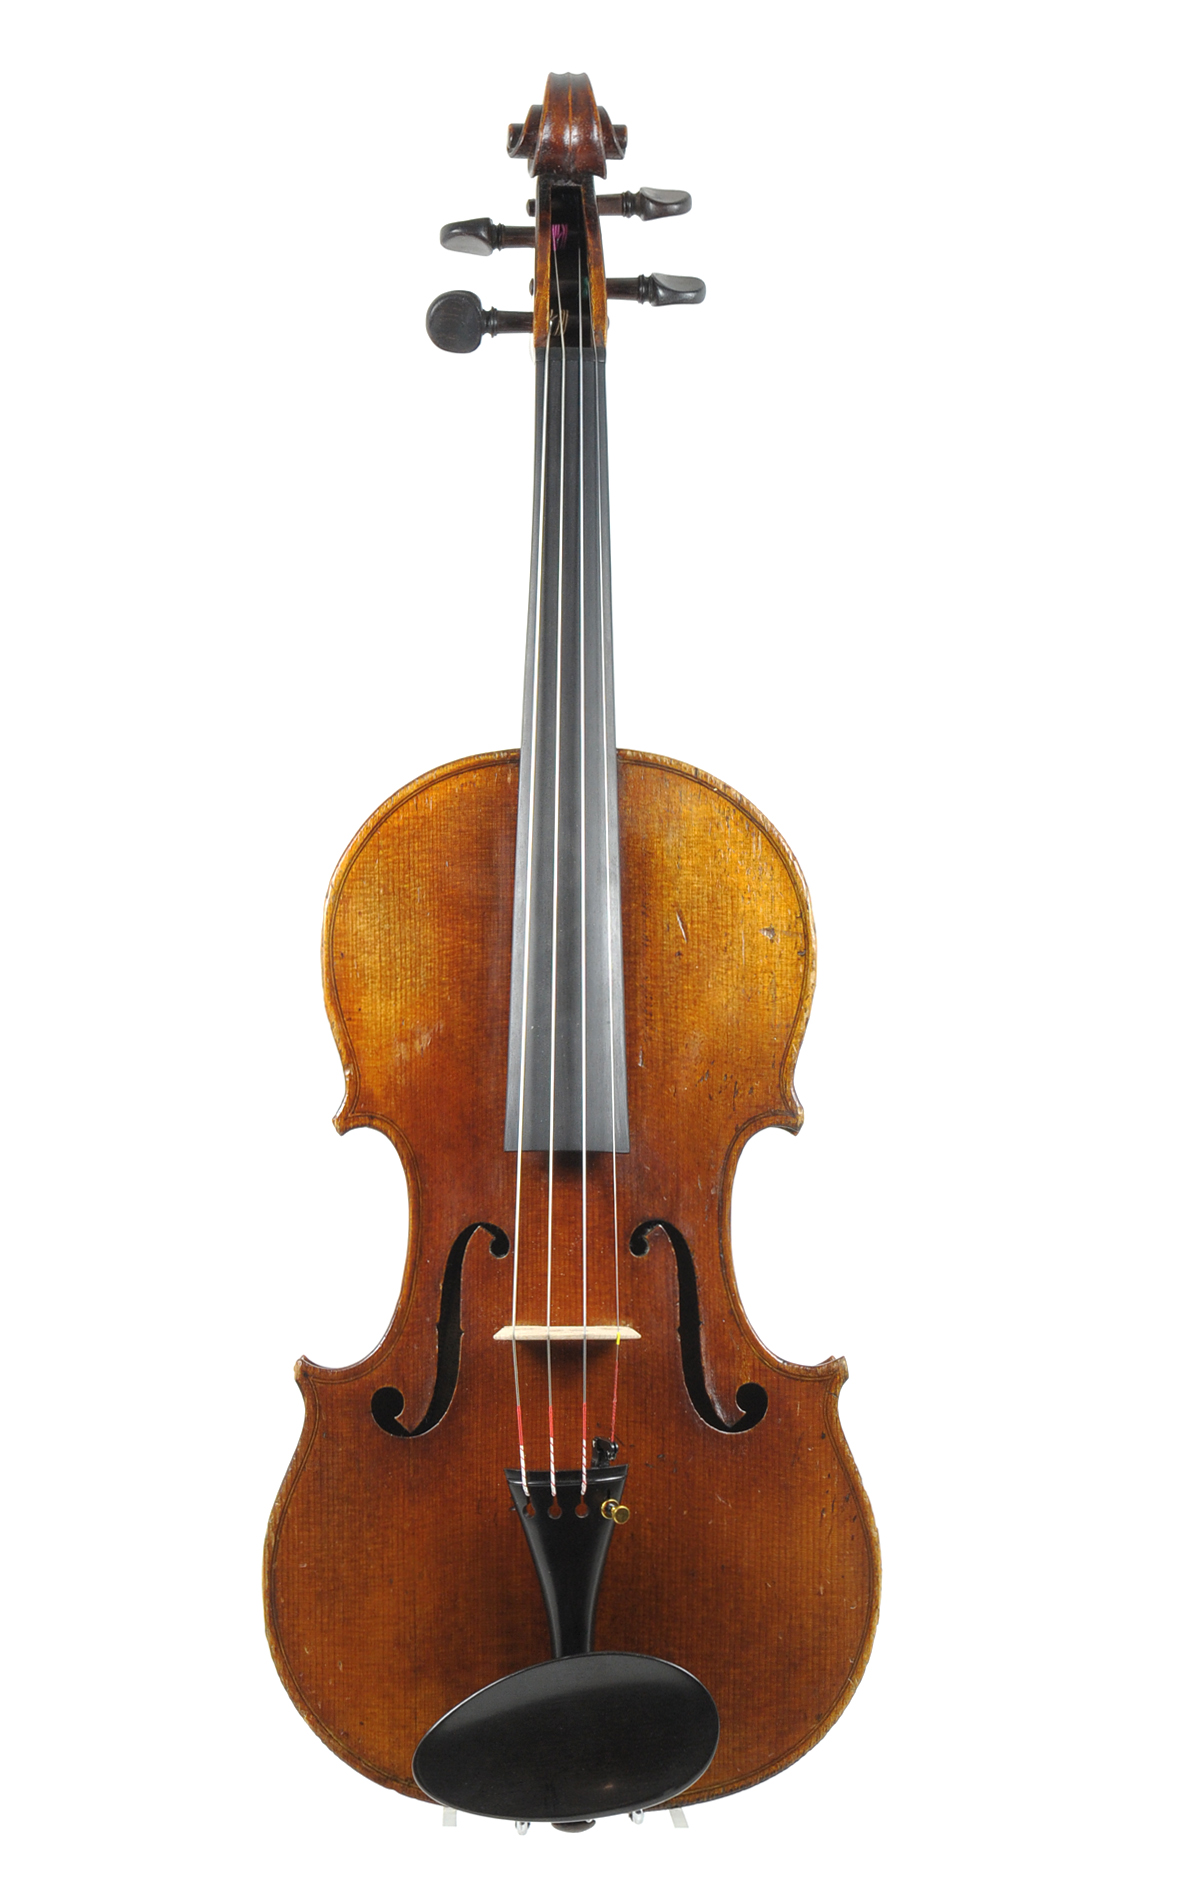 George Adolphe Chanot violin No. 79, London